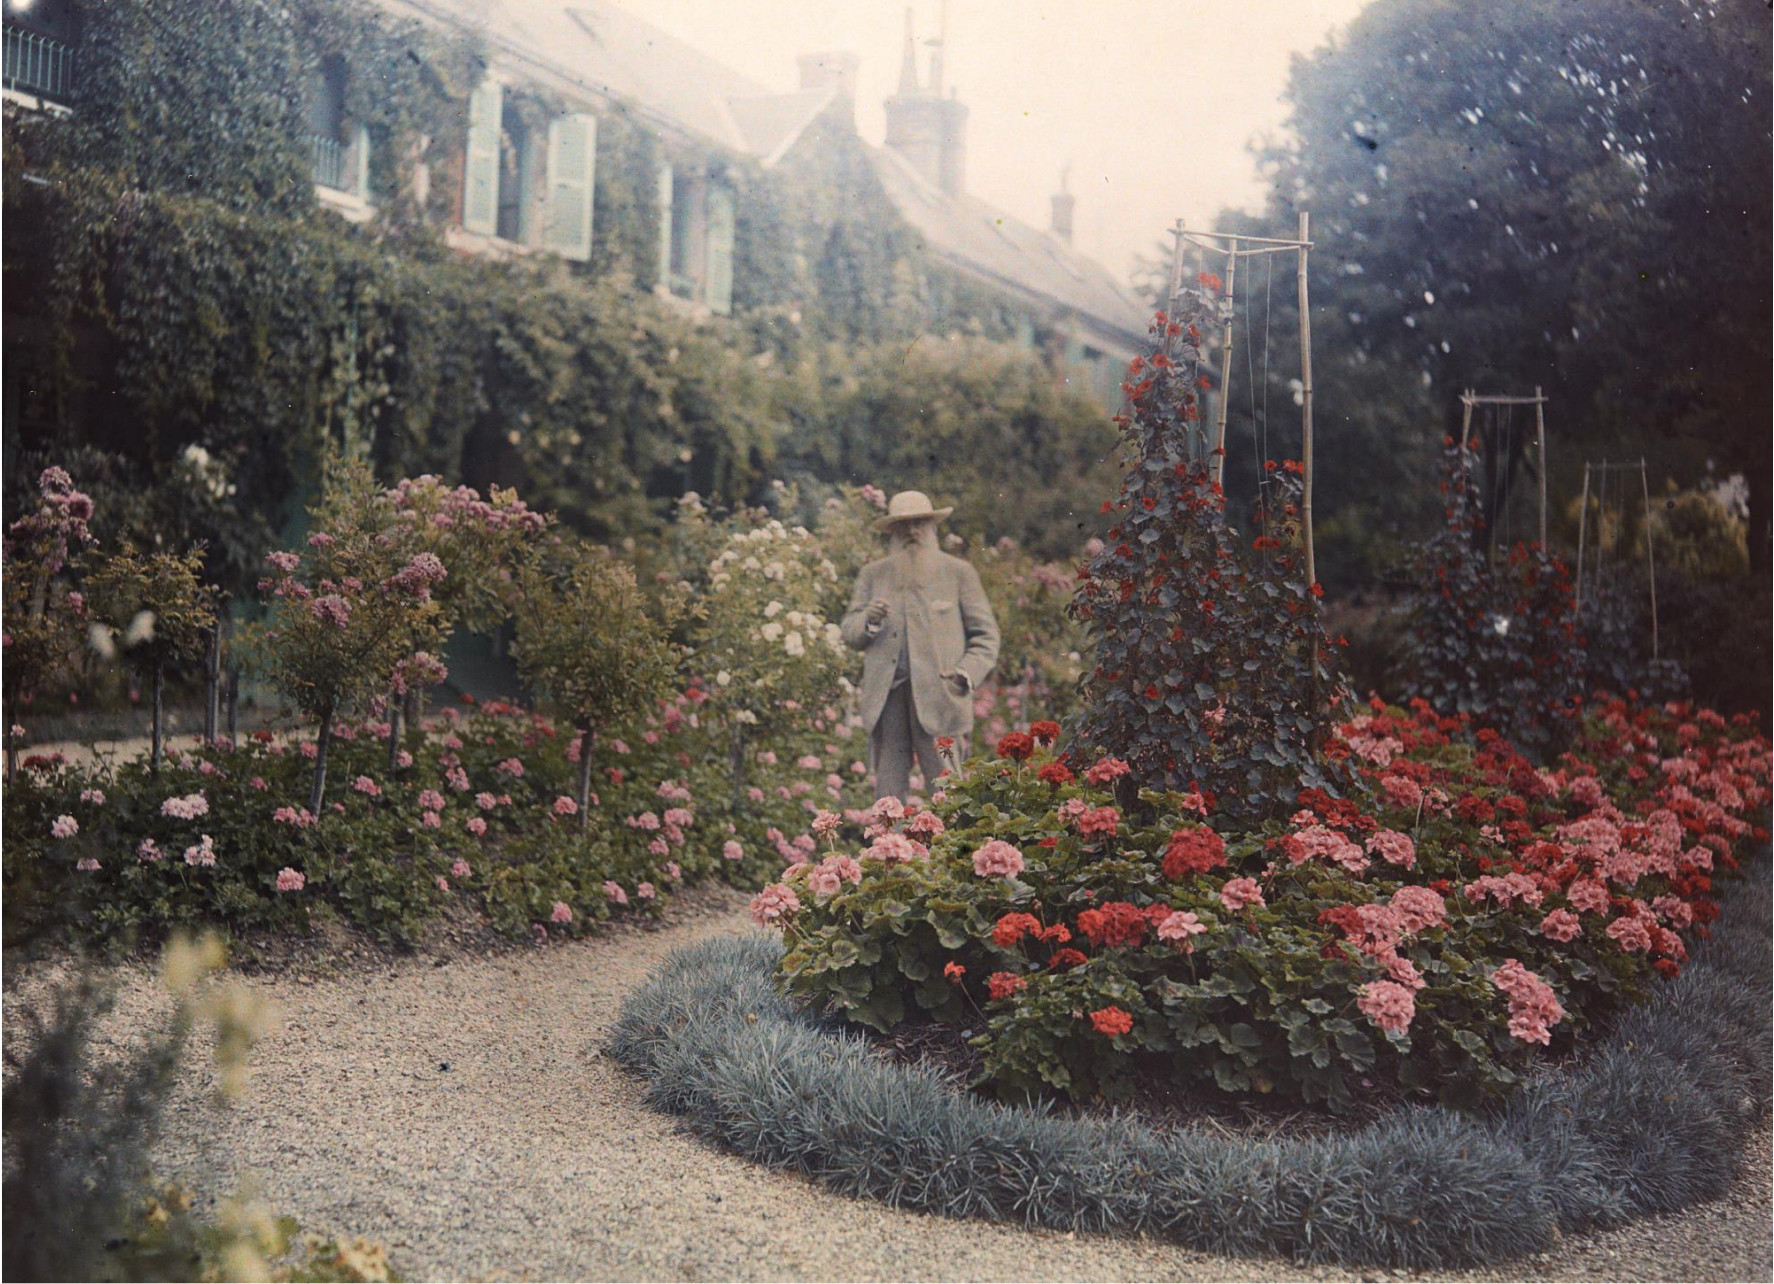 Claude Monet in his Giverny, France, garden in 1921.